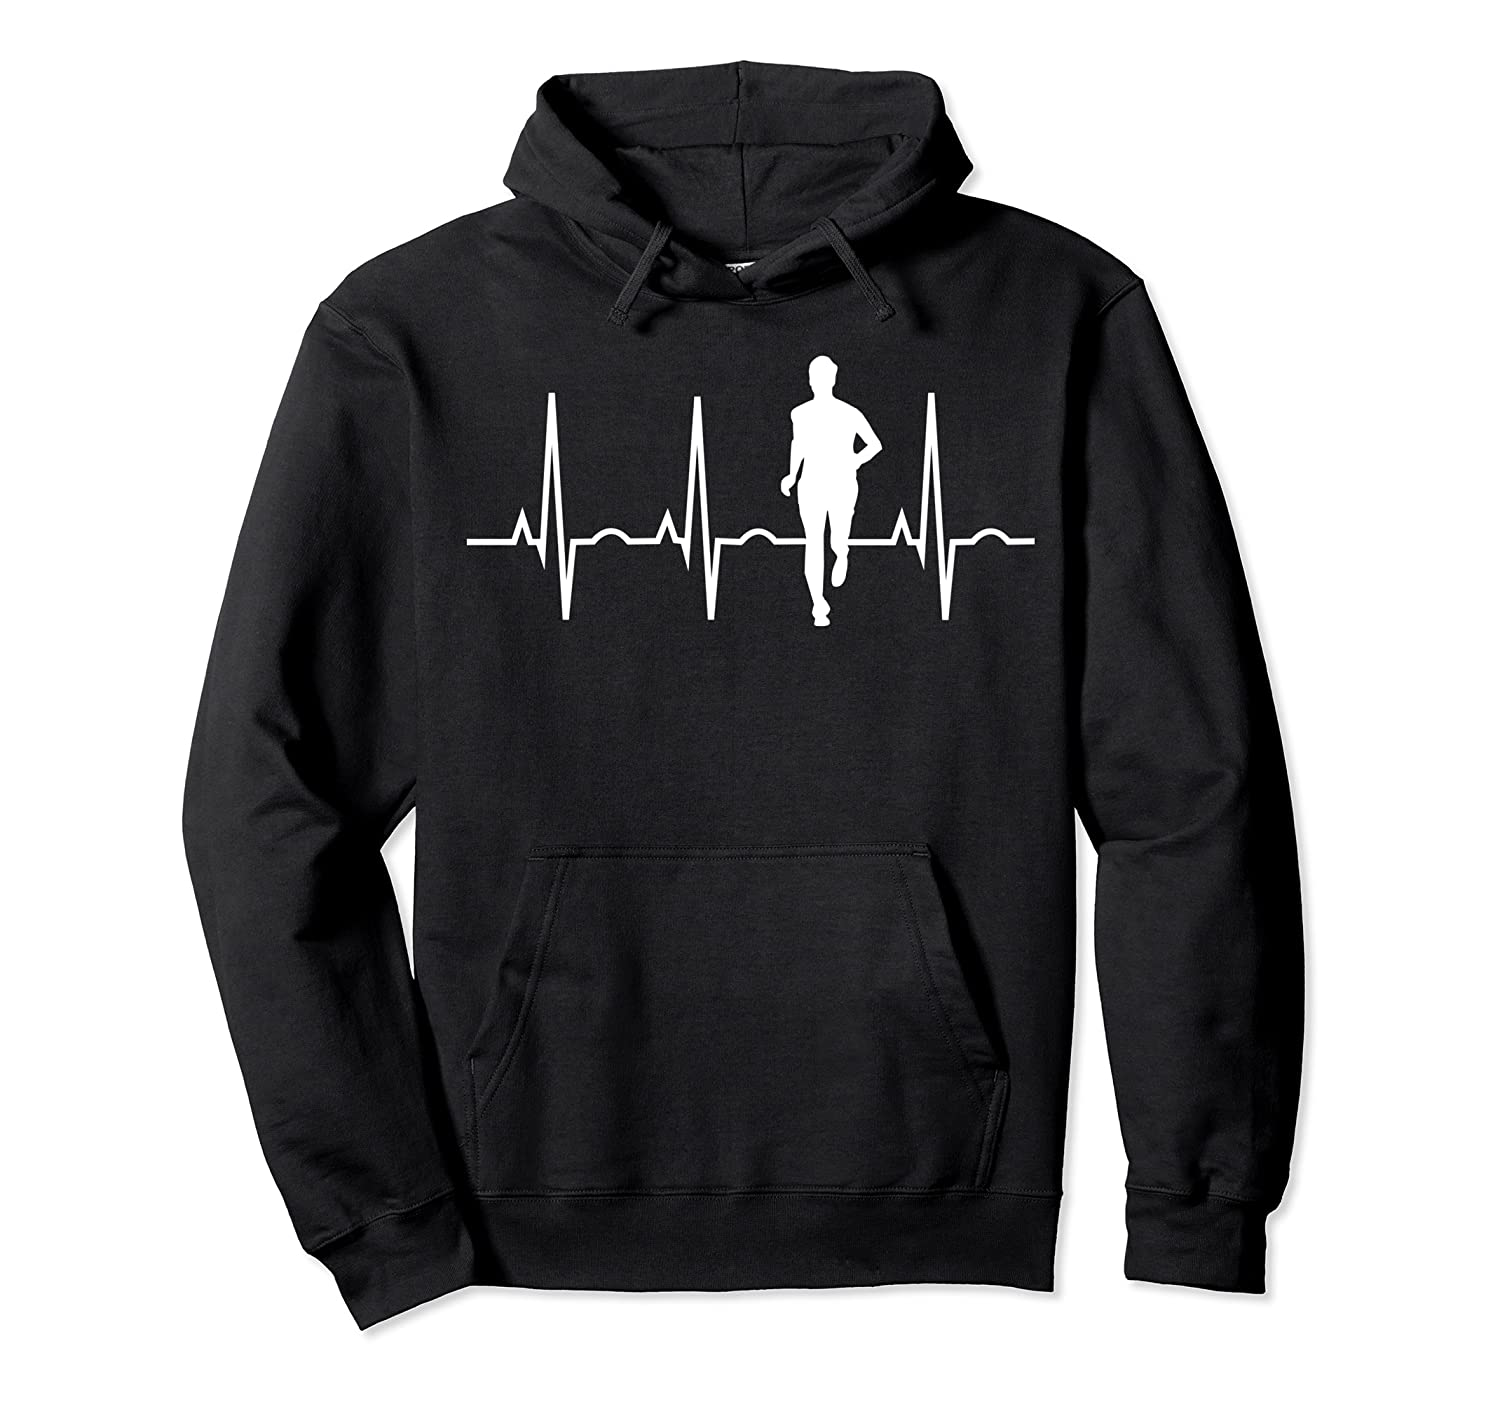 Cross Country Running Gifts Runner Heartbeat Ns Boy Shirts Unisex Pullover Hoodie